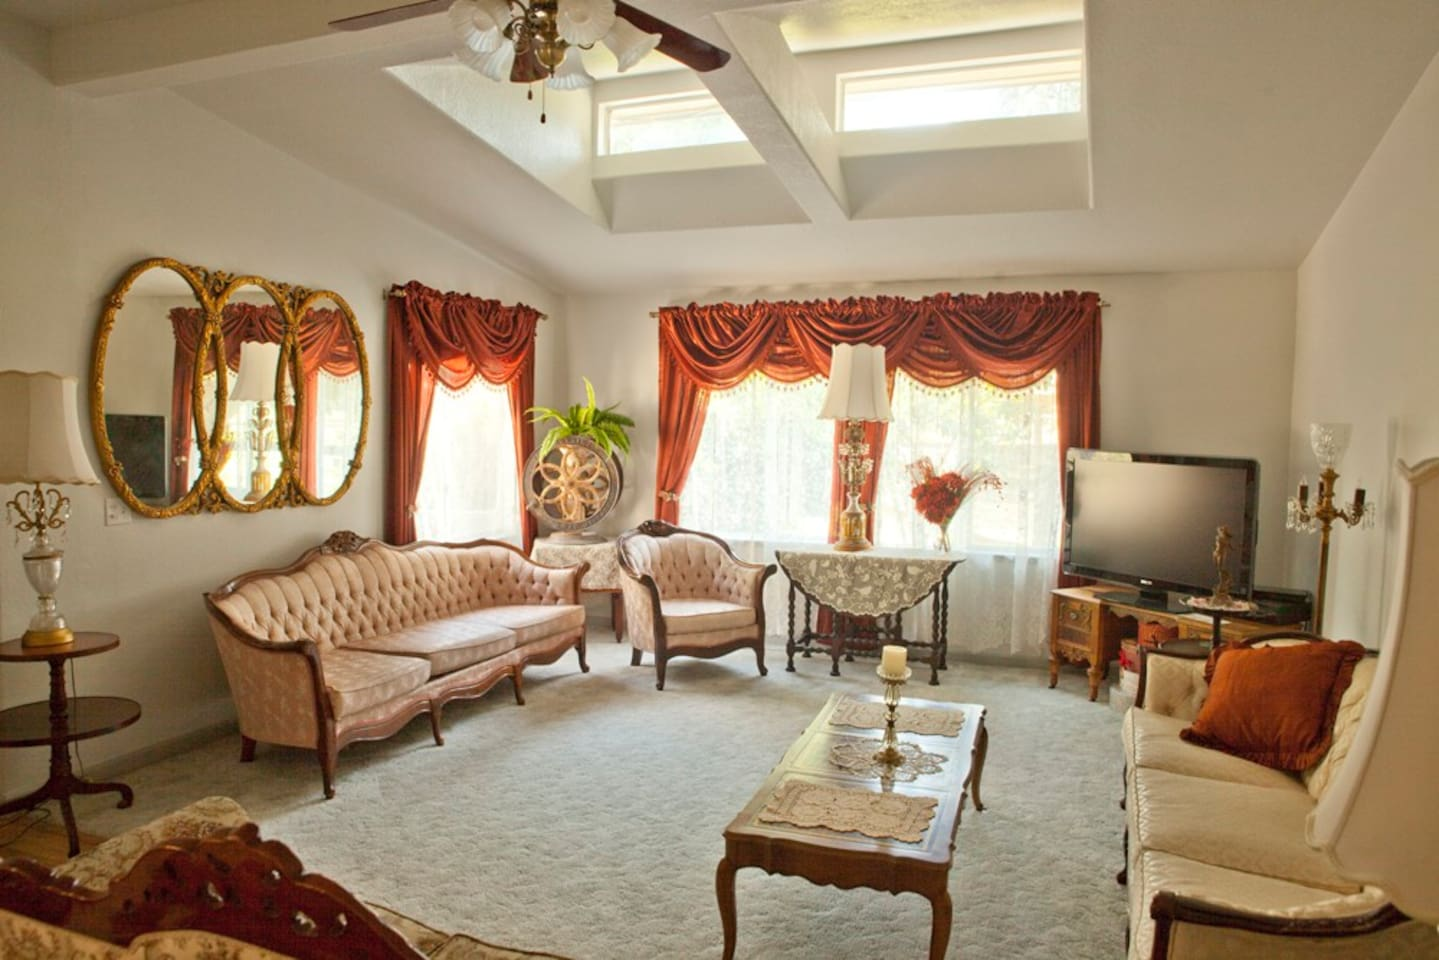 The living room features vintage and reproduction furniture in a skylit room overlooking horse pastures.